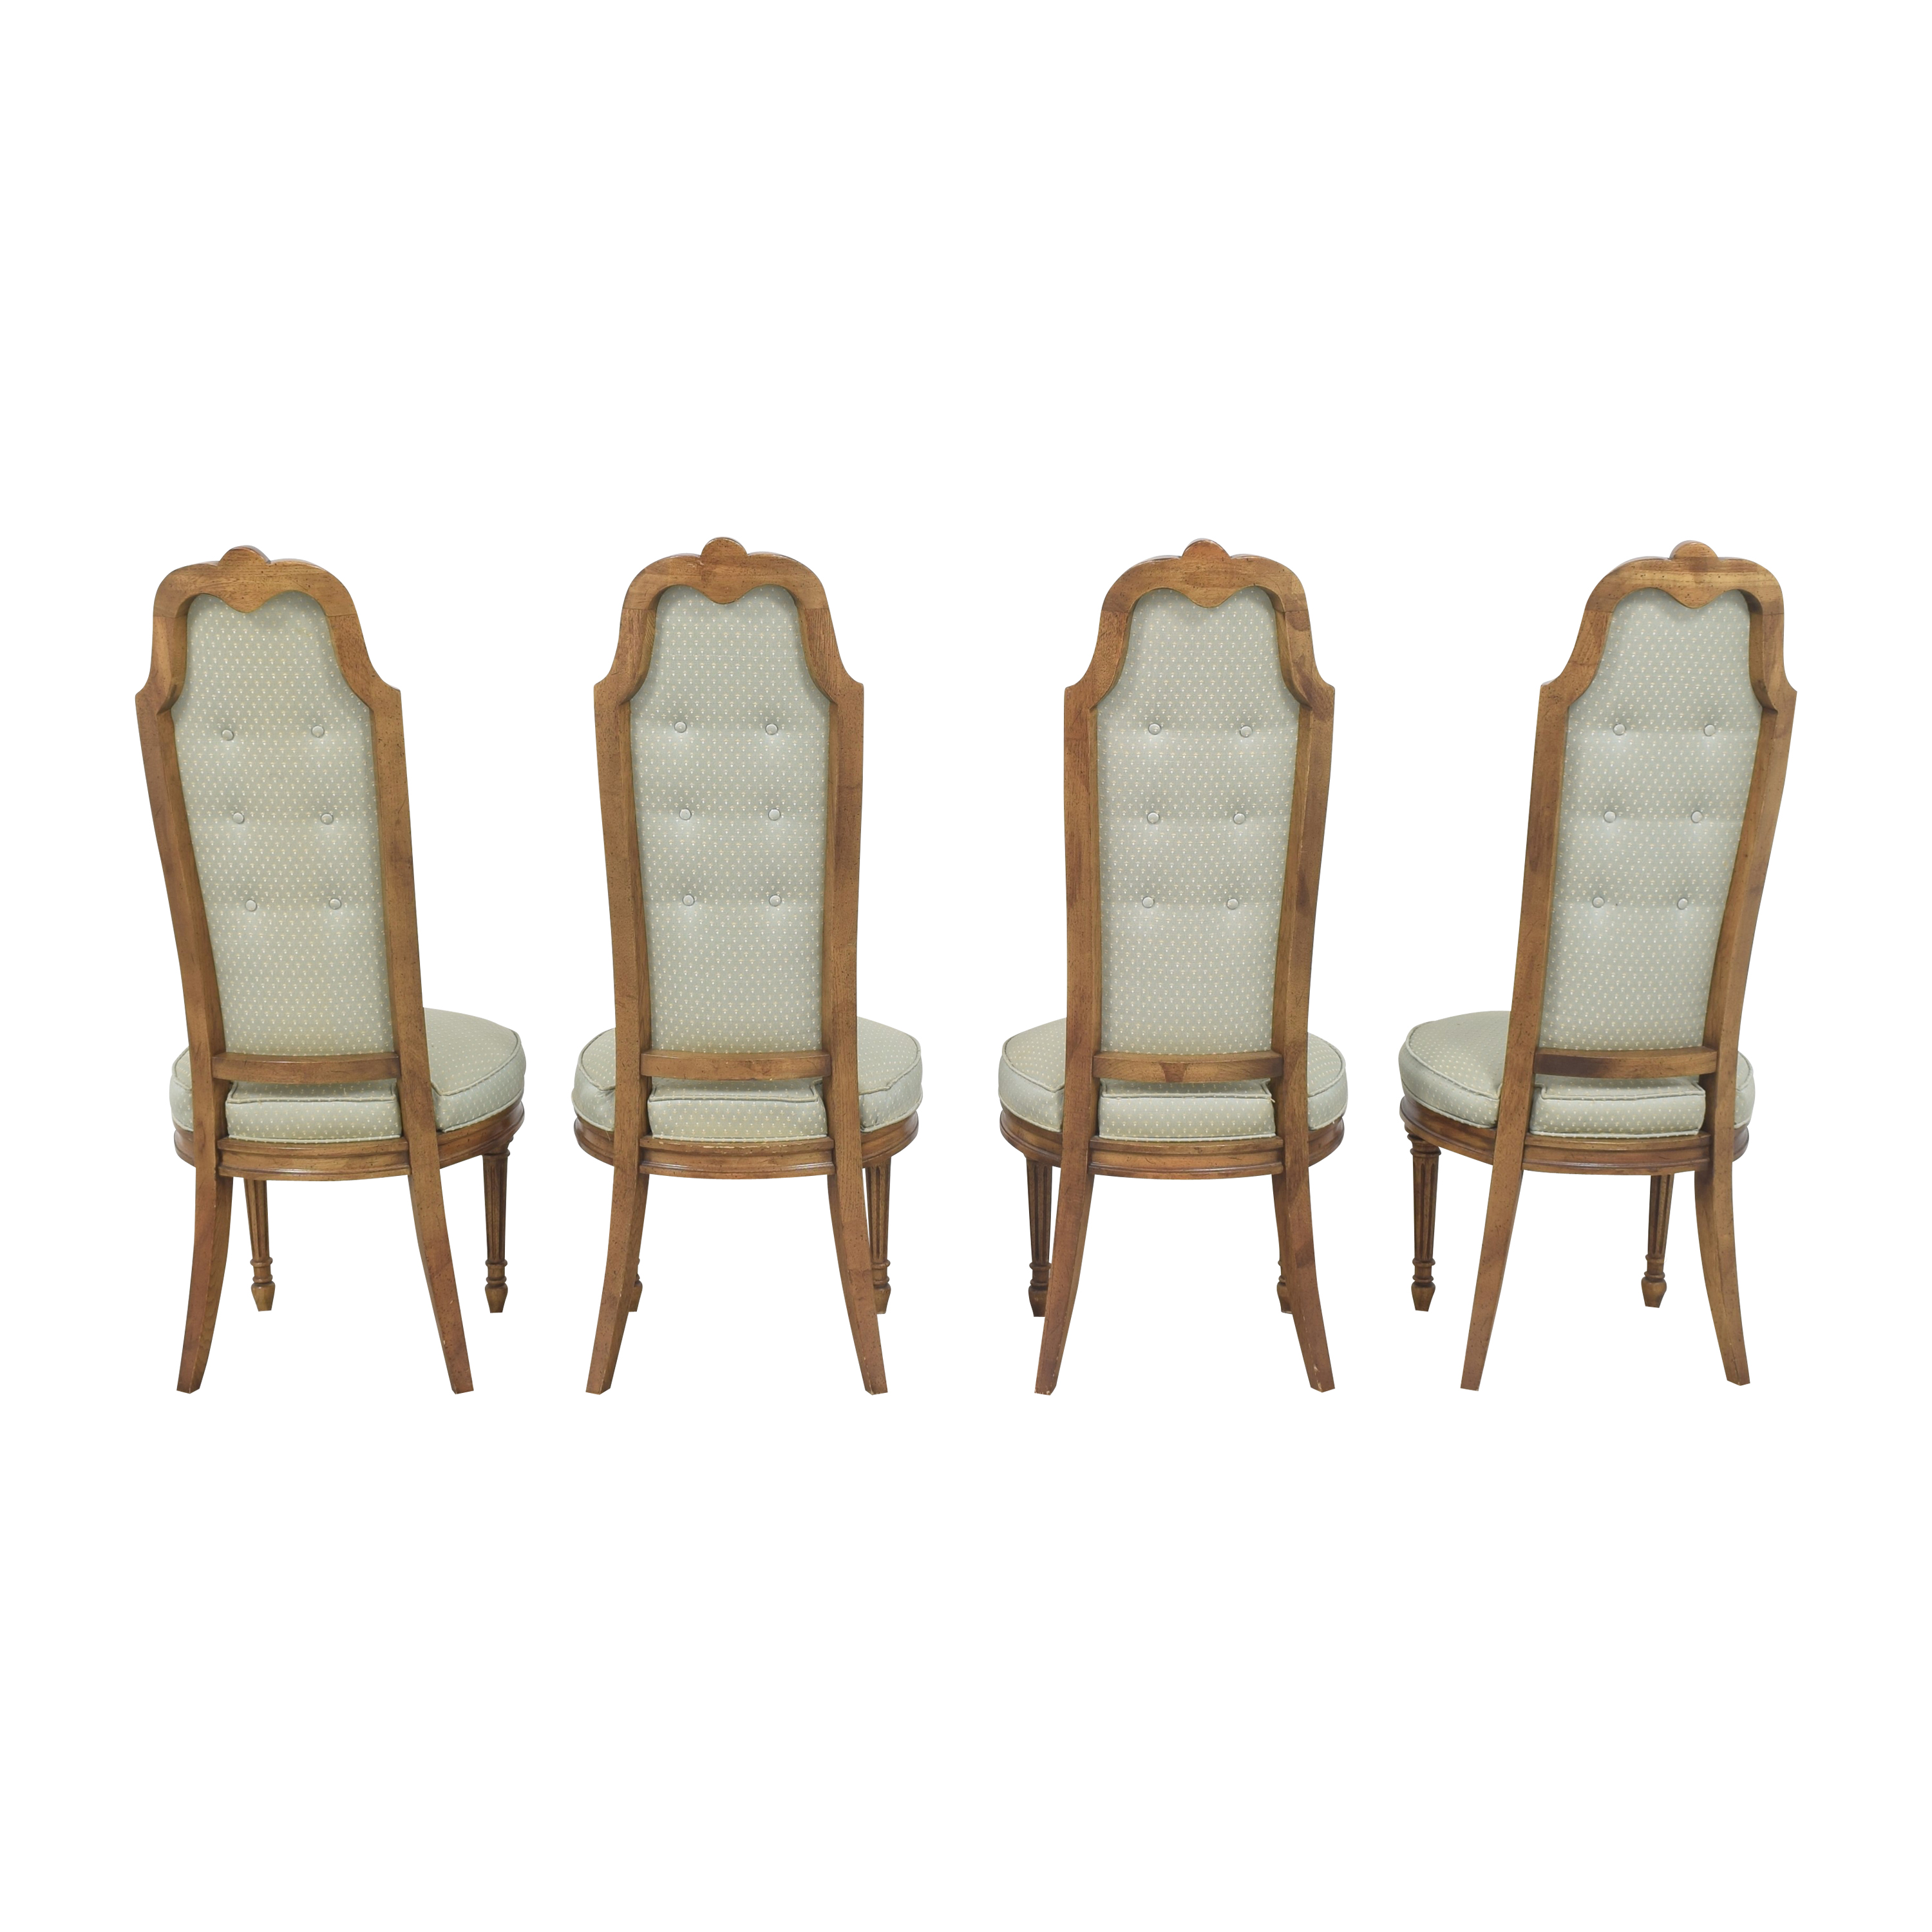 buy High Back Tufted Dining Chairs